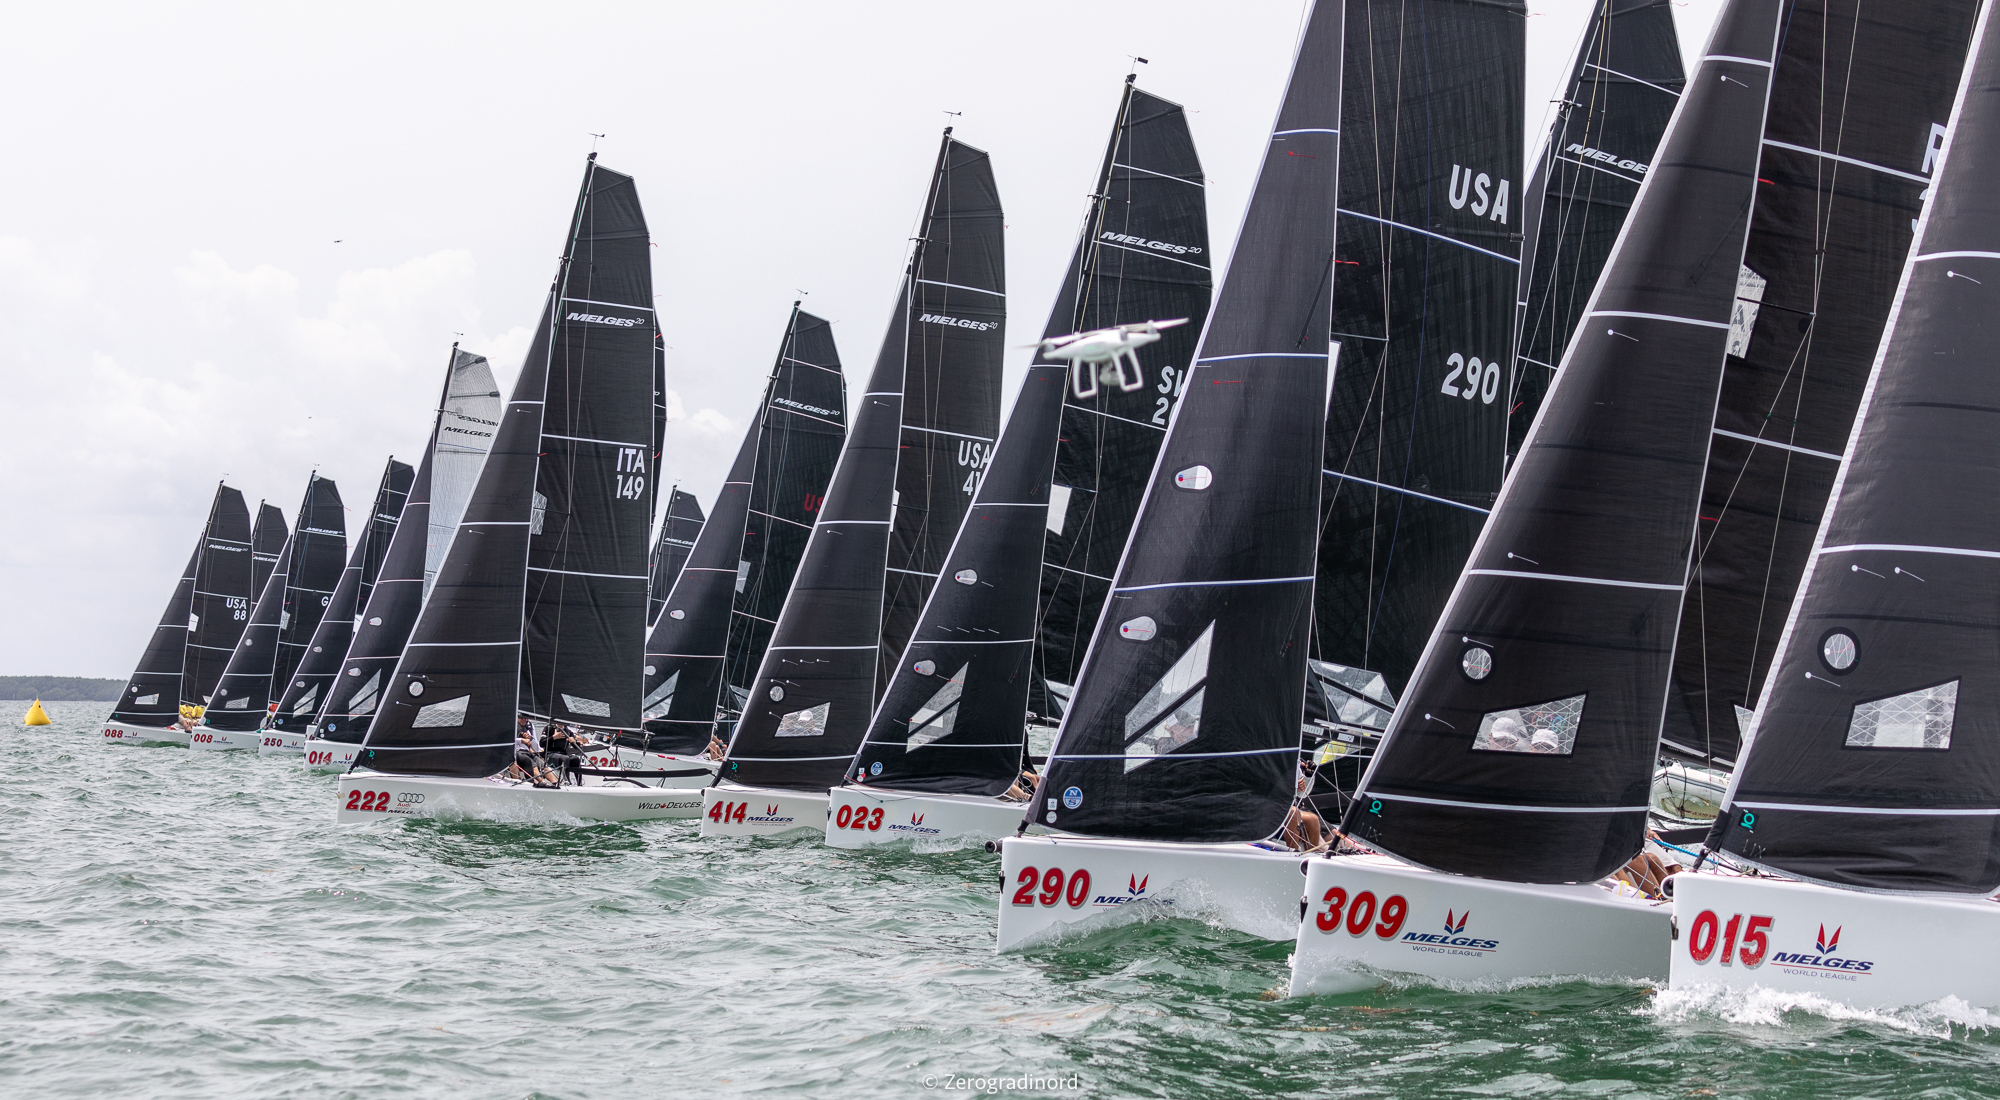 Melges20_050419_low-75.jpg